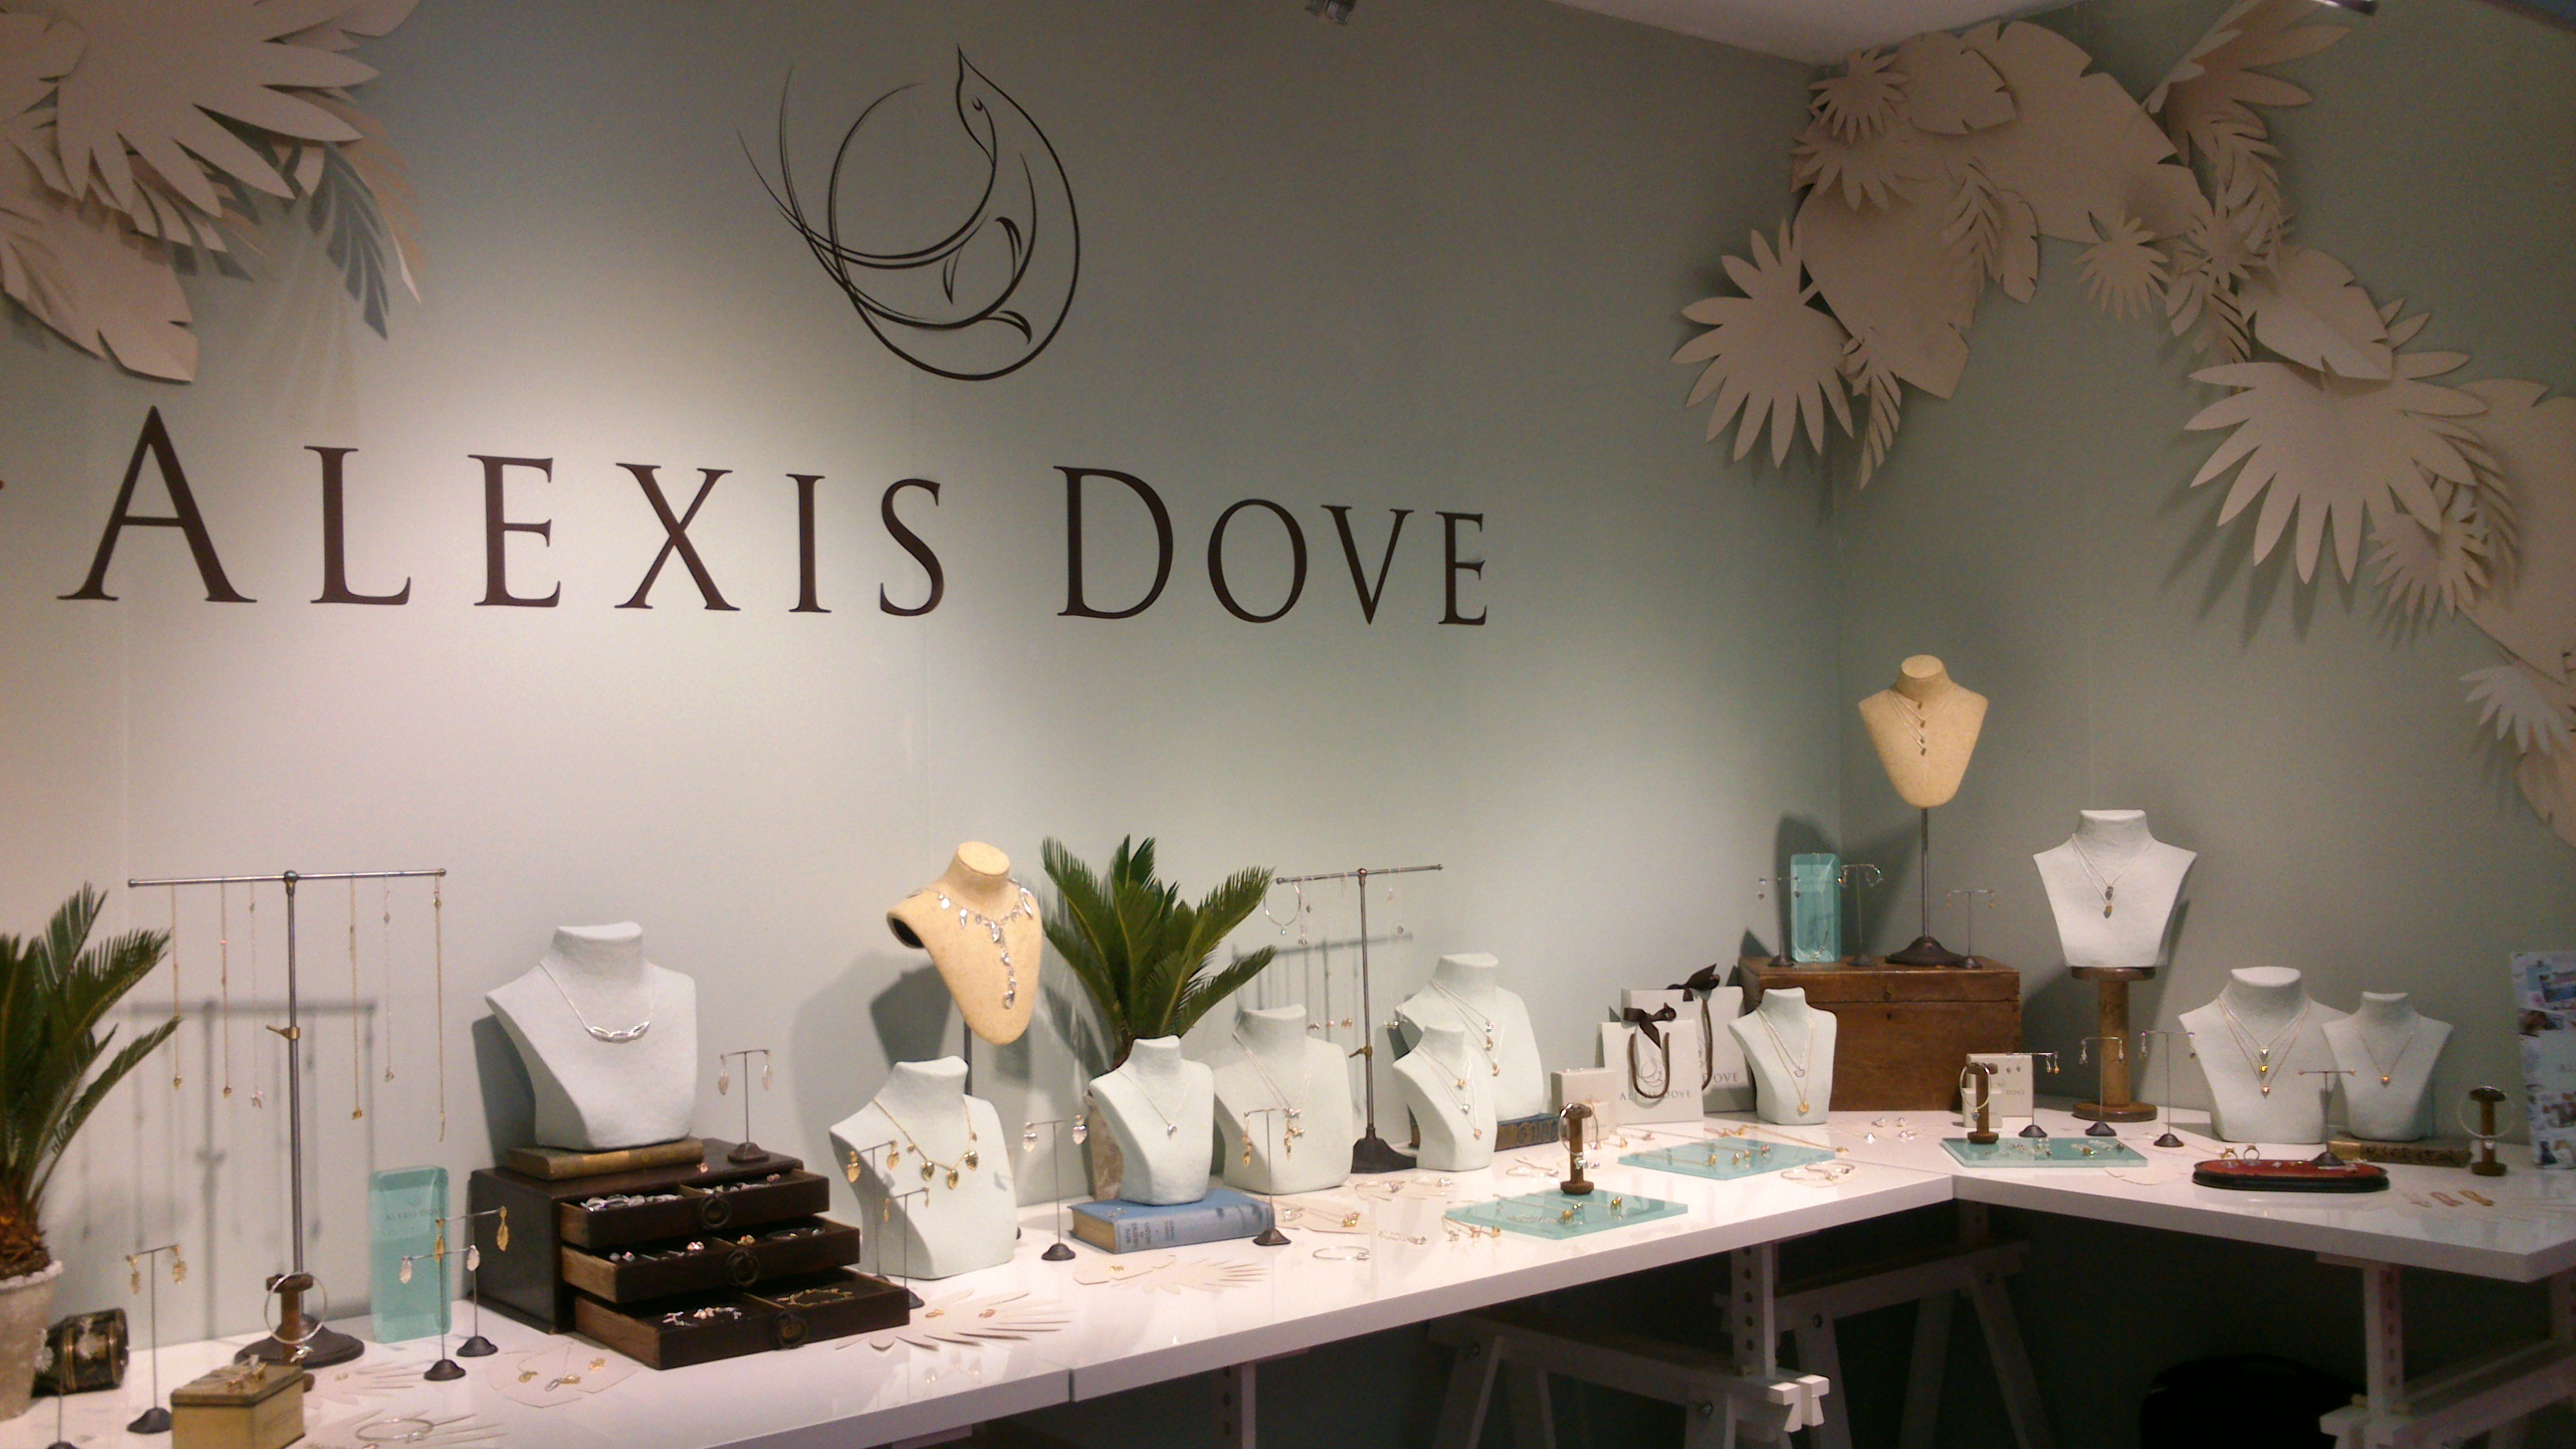 Alexis Dove inspiration for jewelry display store ideas. A setting with decor including small plants and paper leafs on the walls.